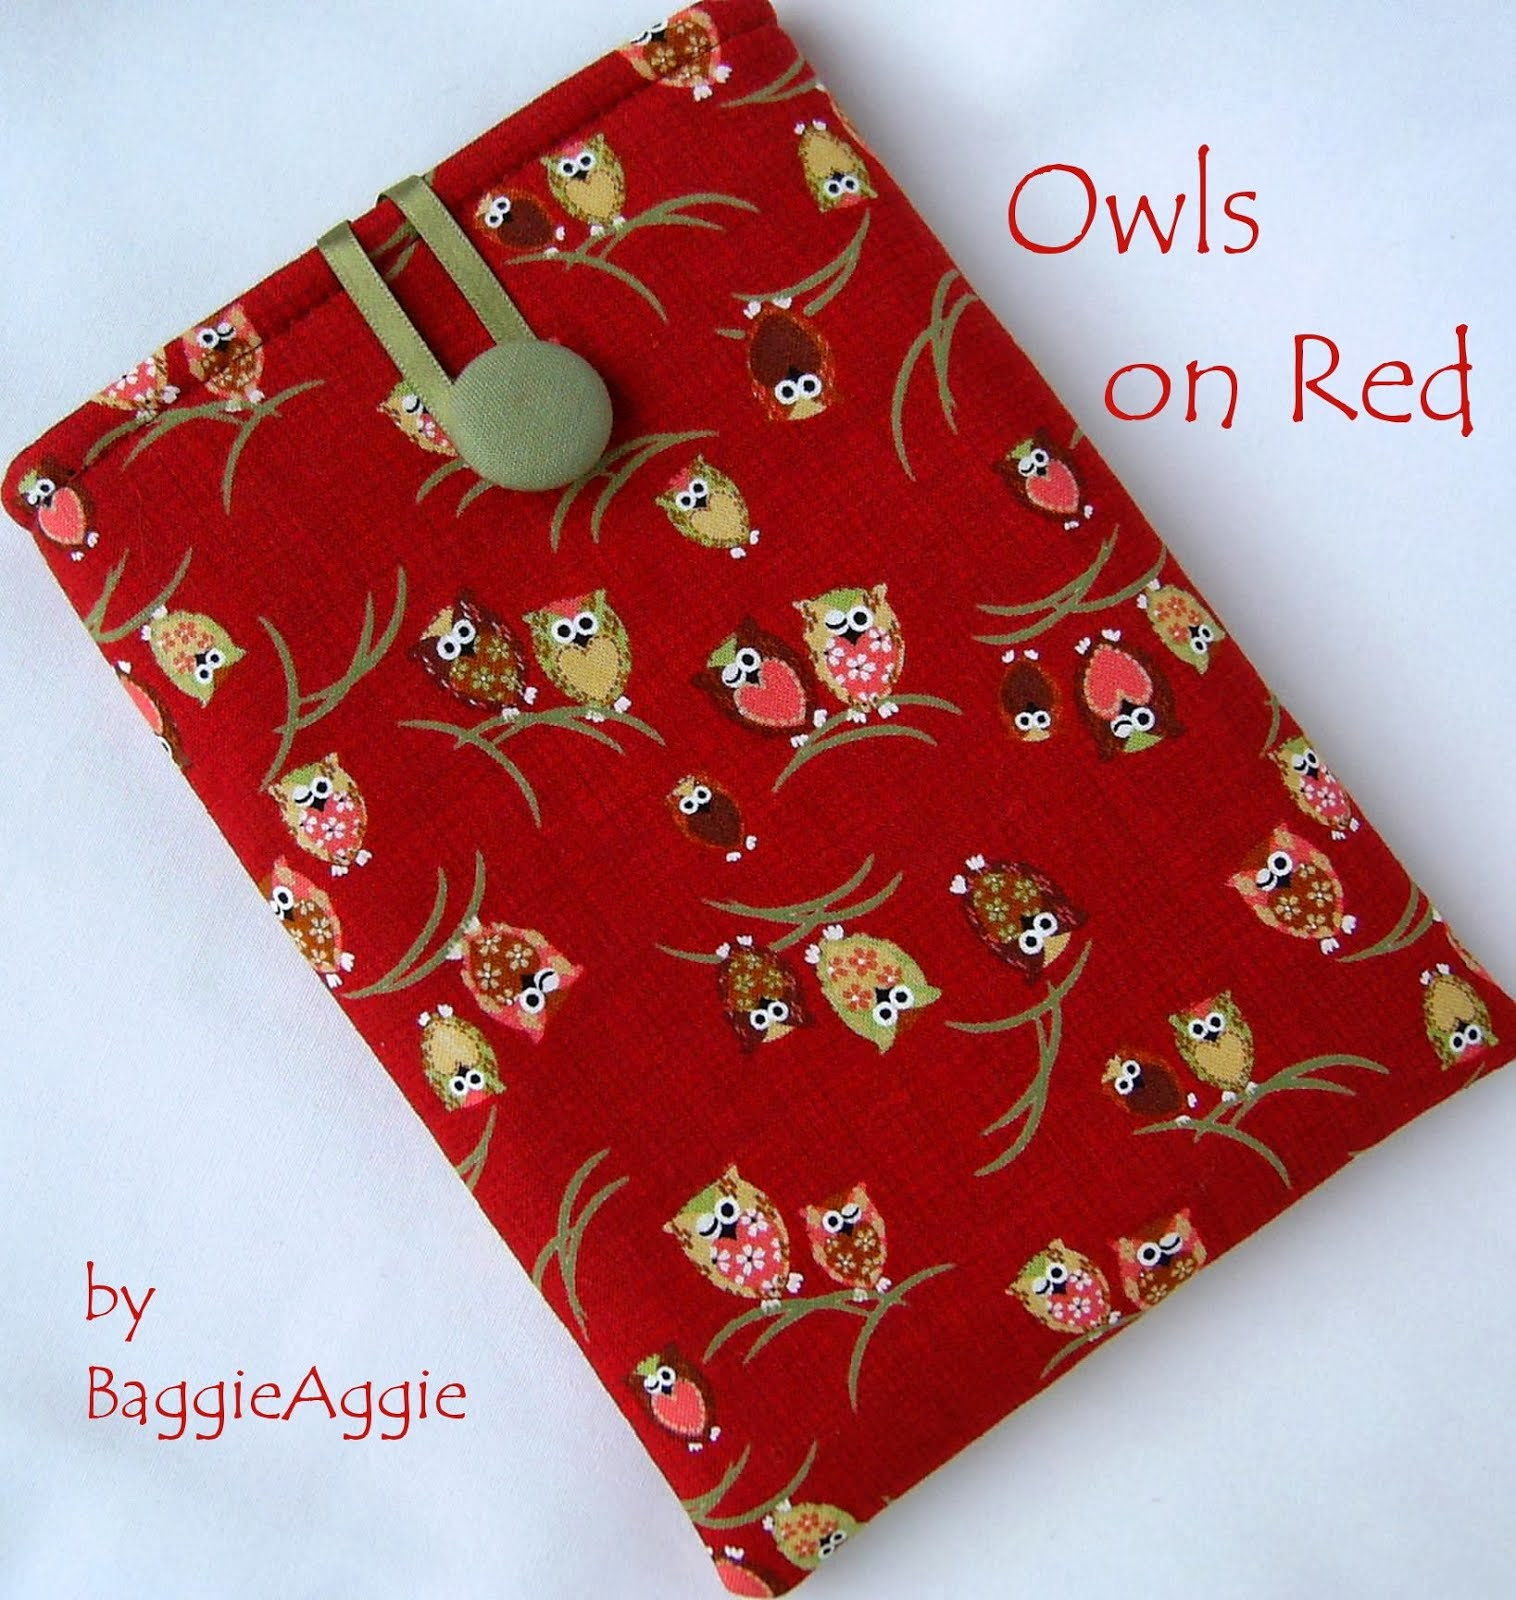 Owls on Red